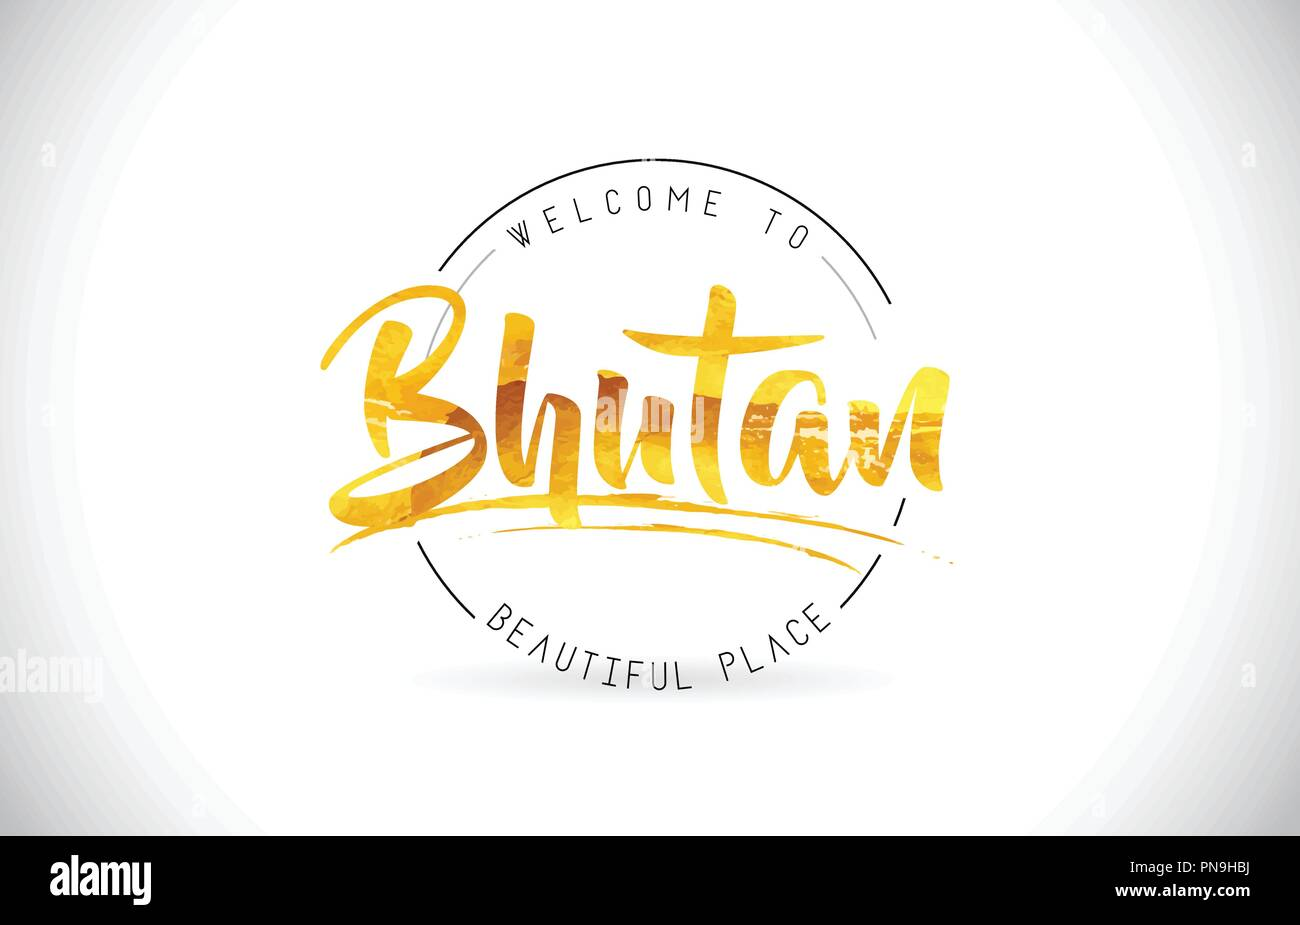 Bhutan Welcome To Word Text with Handwritten Font and Golden Texture Design Illustration Vector. - Stock Vector